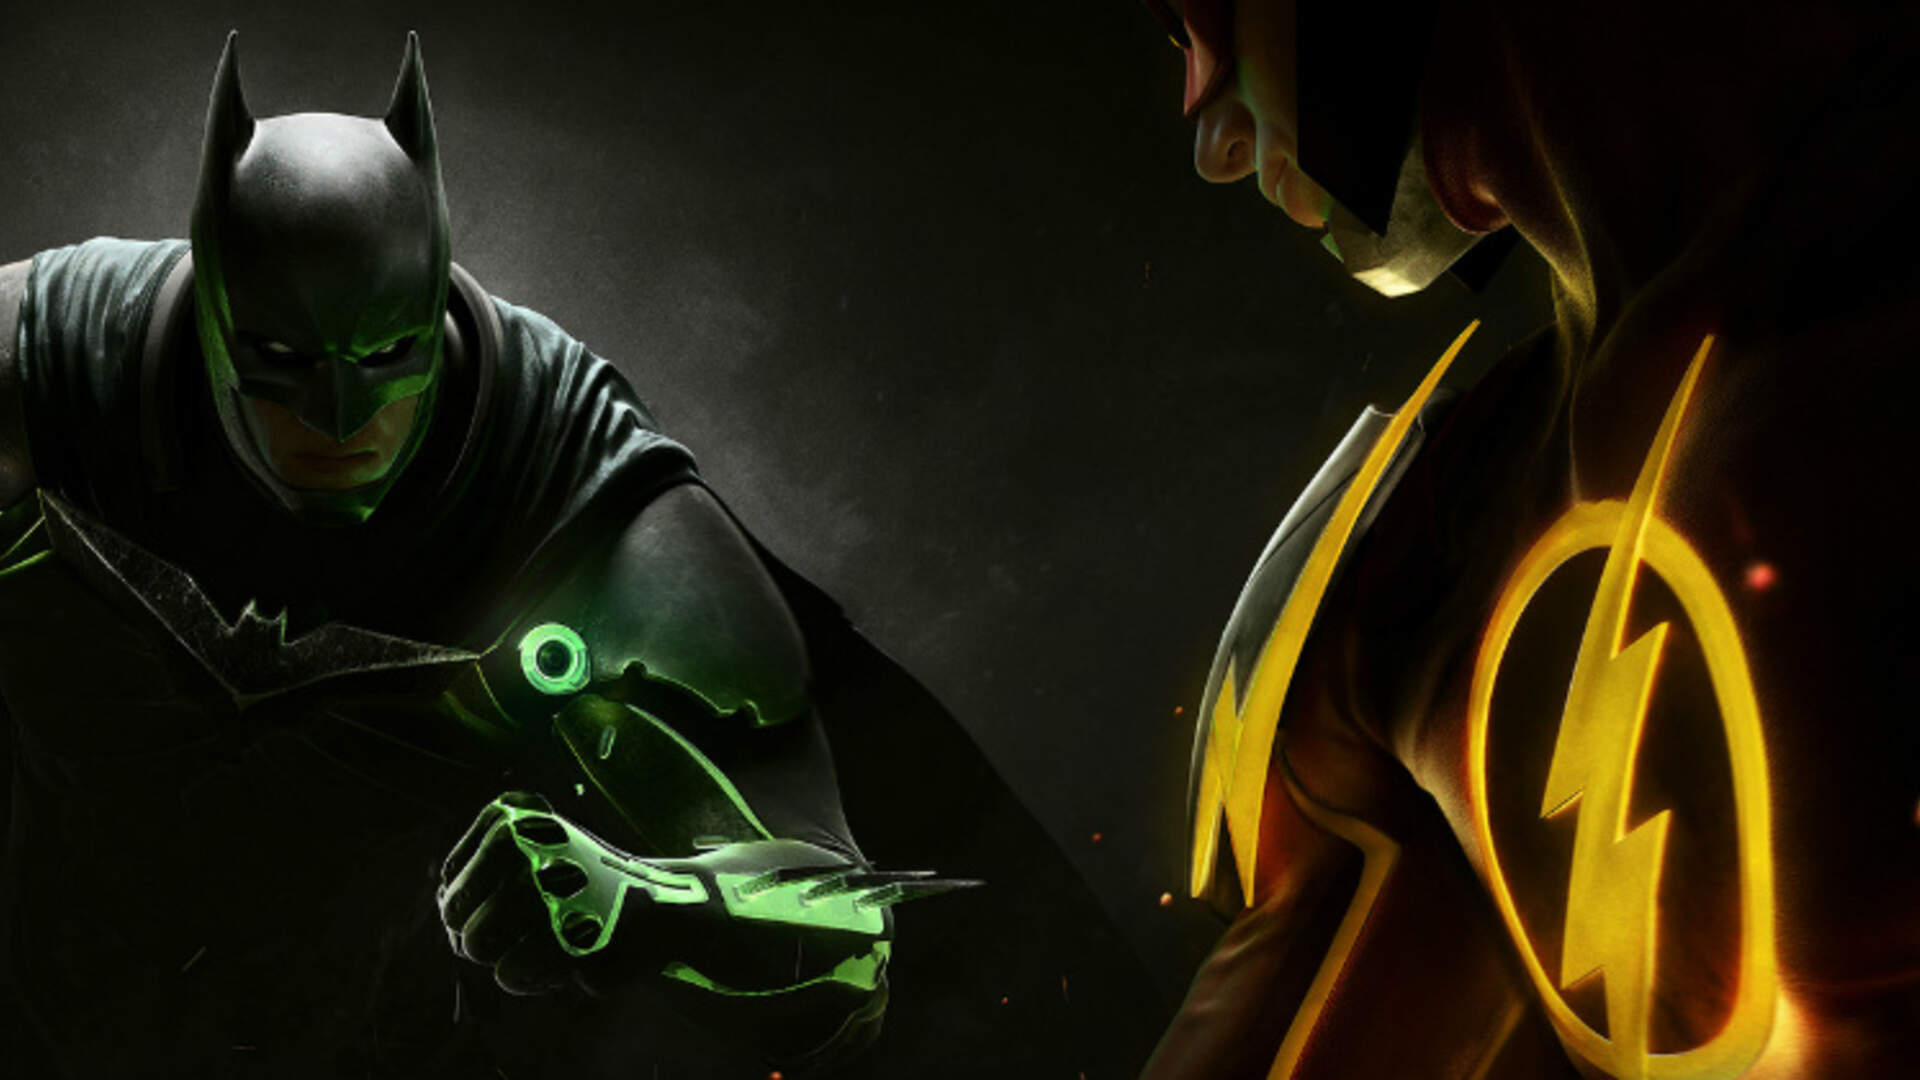 Injustice 2 Characters, Reviews, Release Date, Modes, Trailers and DLC Characters - Everything we Know